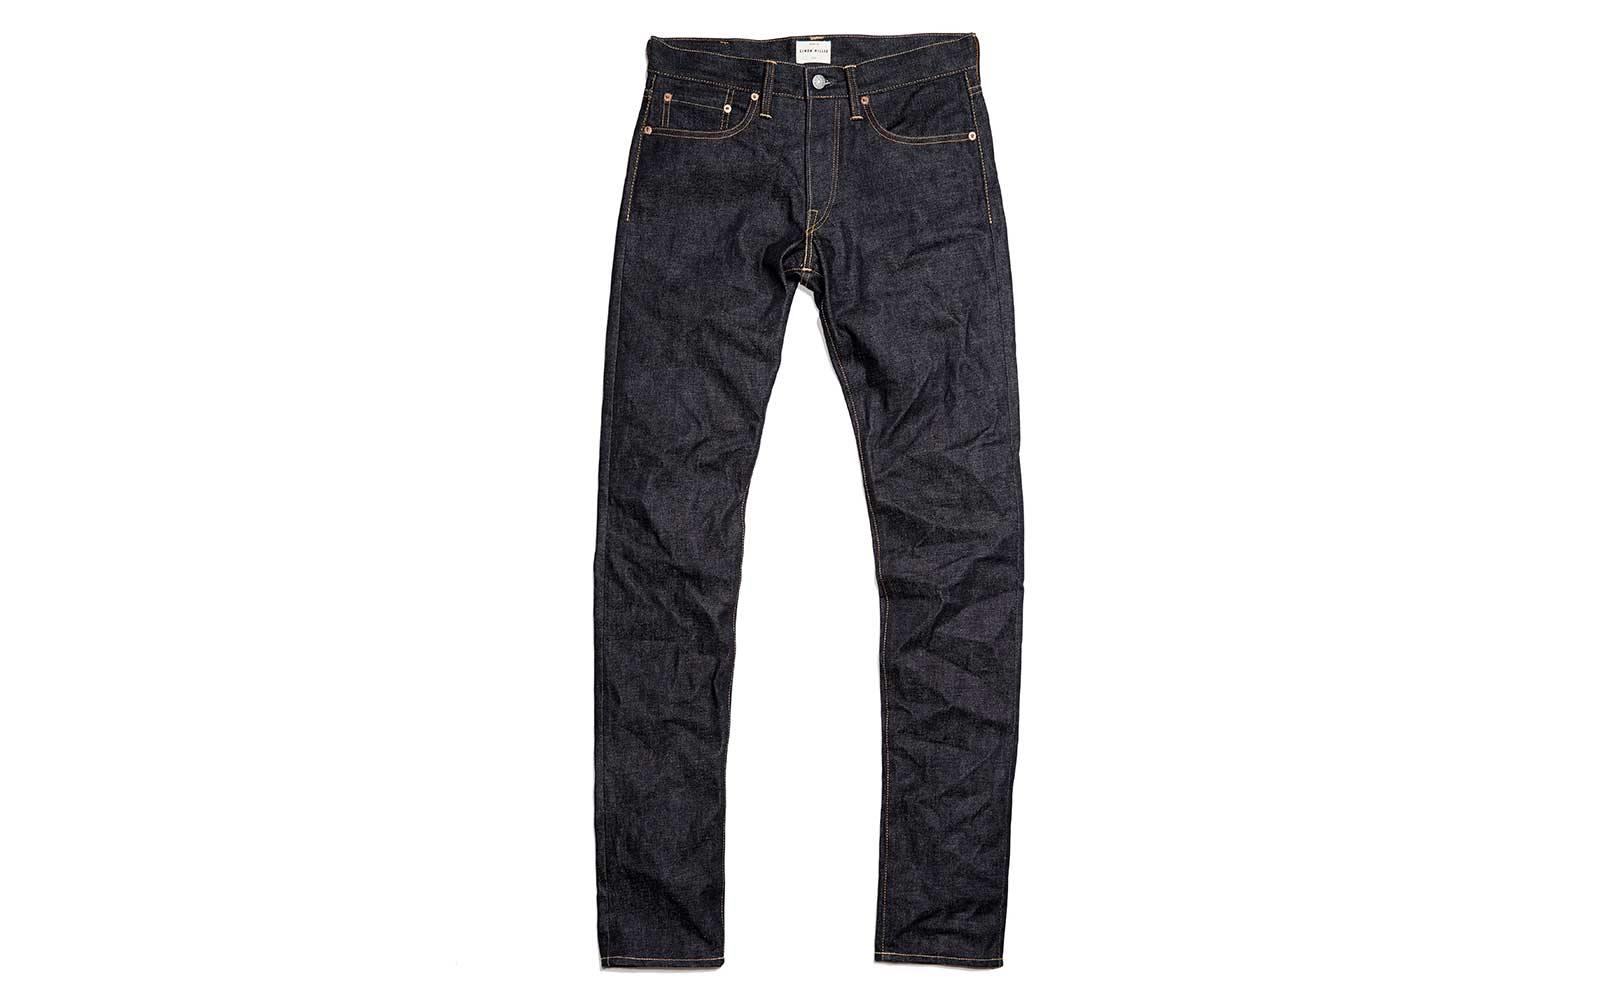 Simon Miller denim jeans